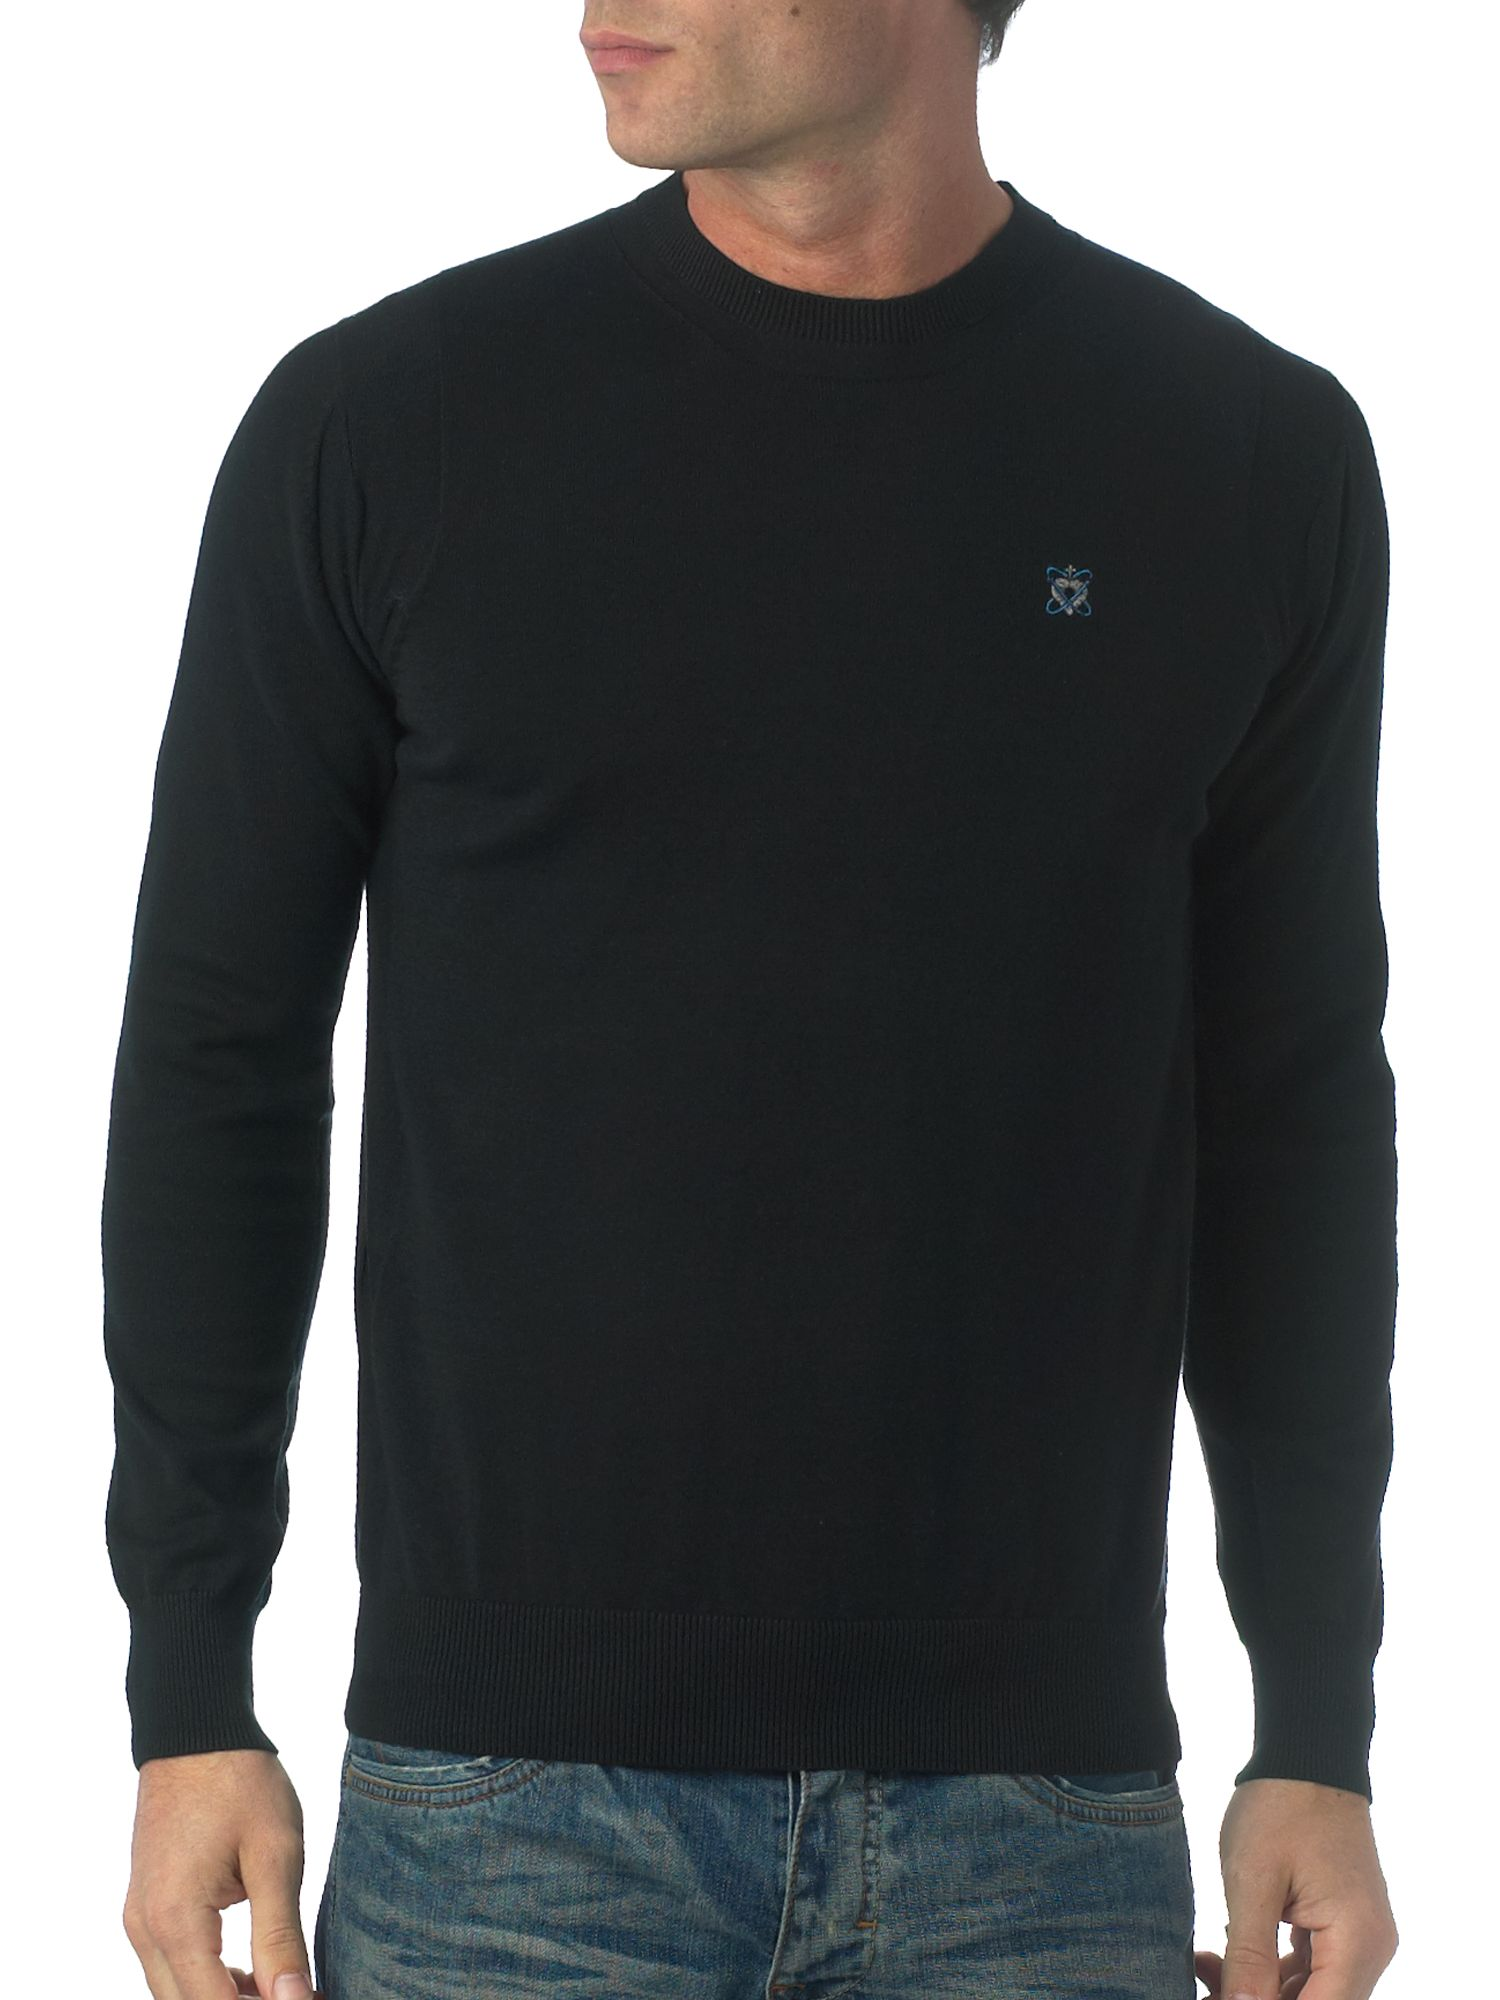 Full Circle Crew neck plain knit